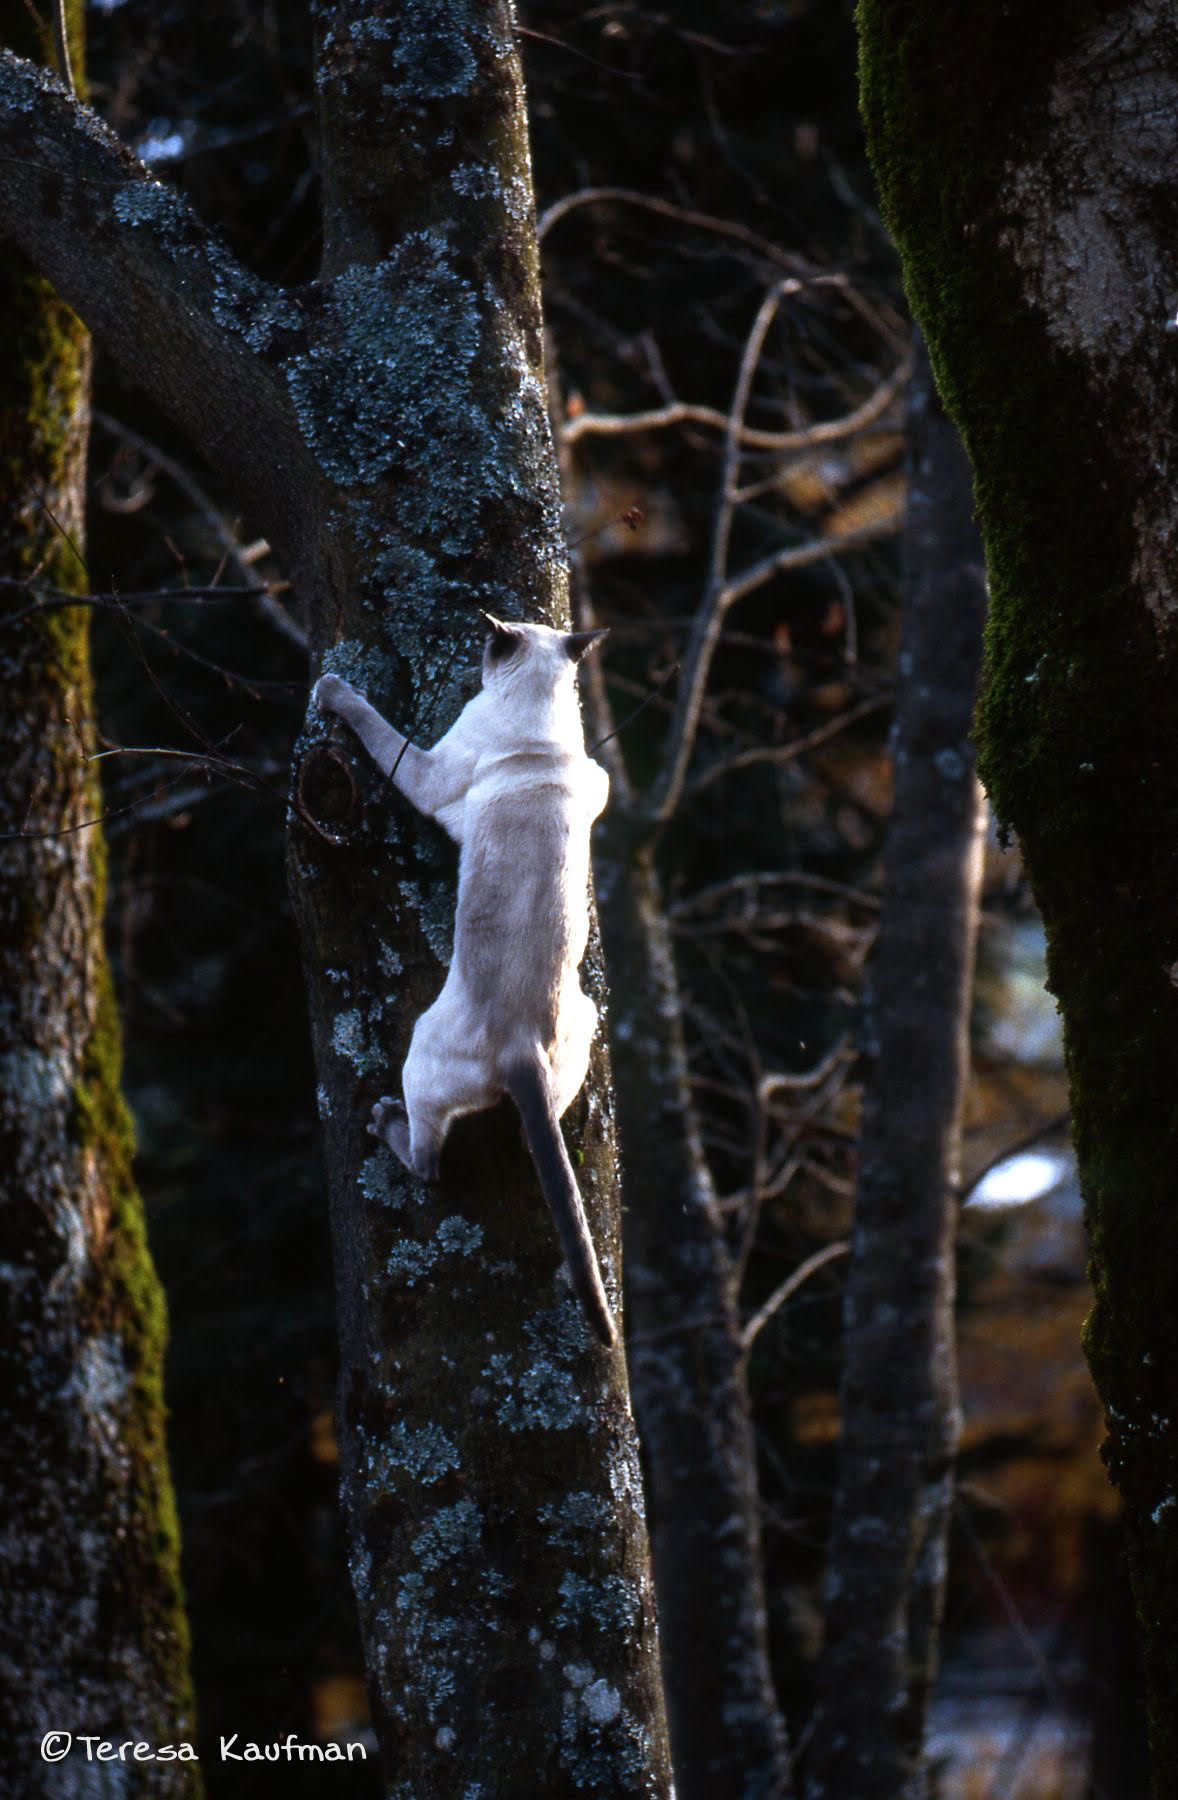 Siamese cat climbing tree